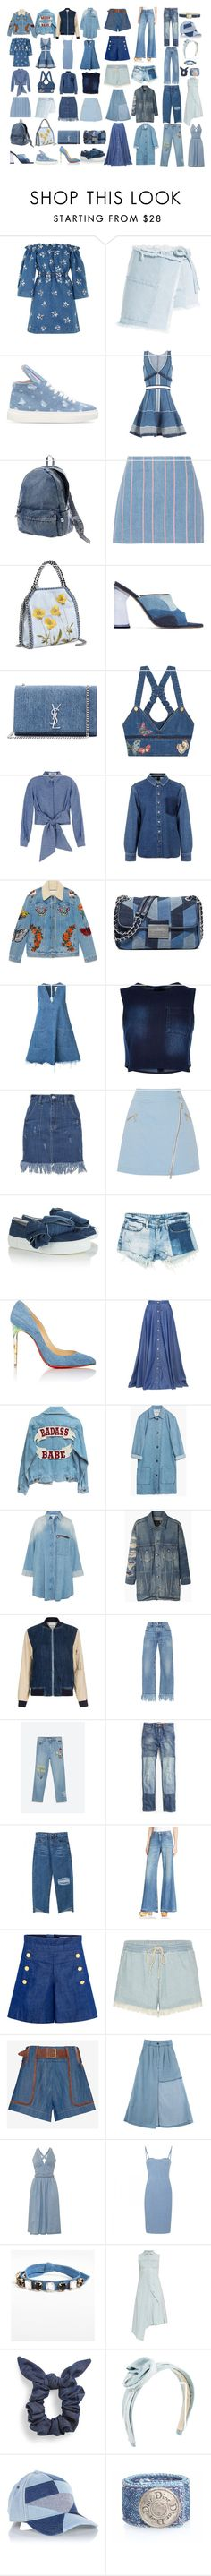 """""""Denim Everything"""" by blaspheme ❤ liked on Polyvore featuring House of Holland, Sandy Liang, Minna Parikka, Dsquared2, Issey Miyake, T By Alexander Wang, STELLA McCARTNEY, Amélie Pichard, Yves Saint Laurent and Valentino"""